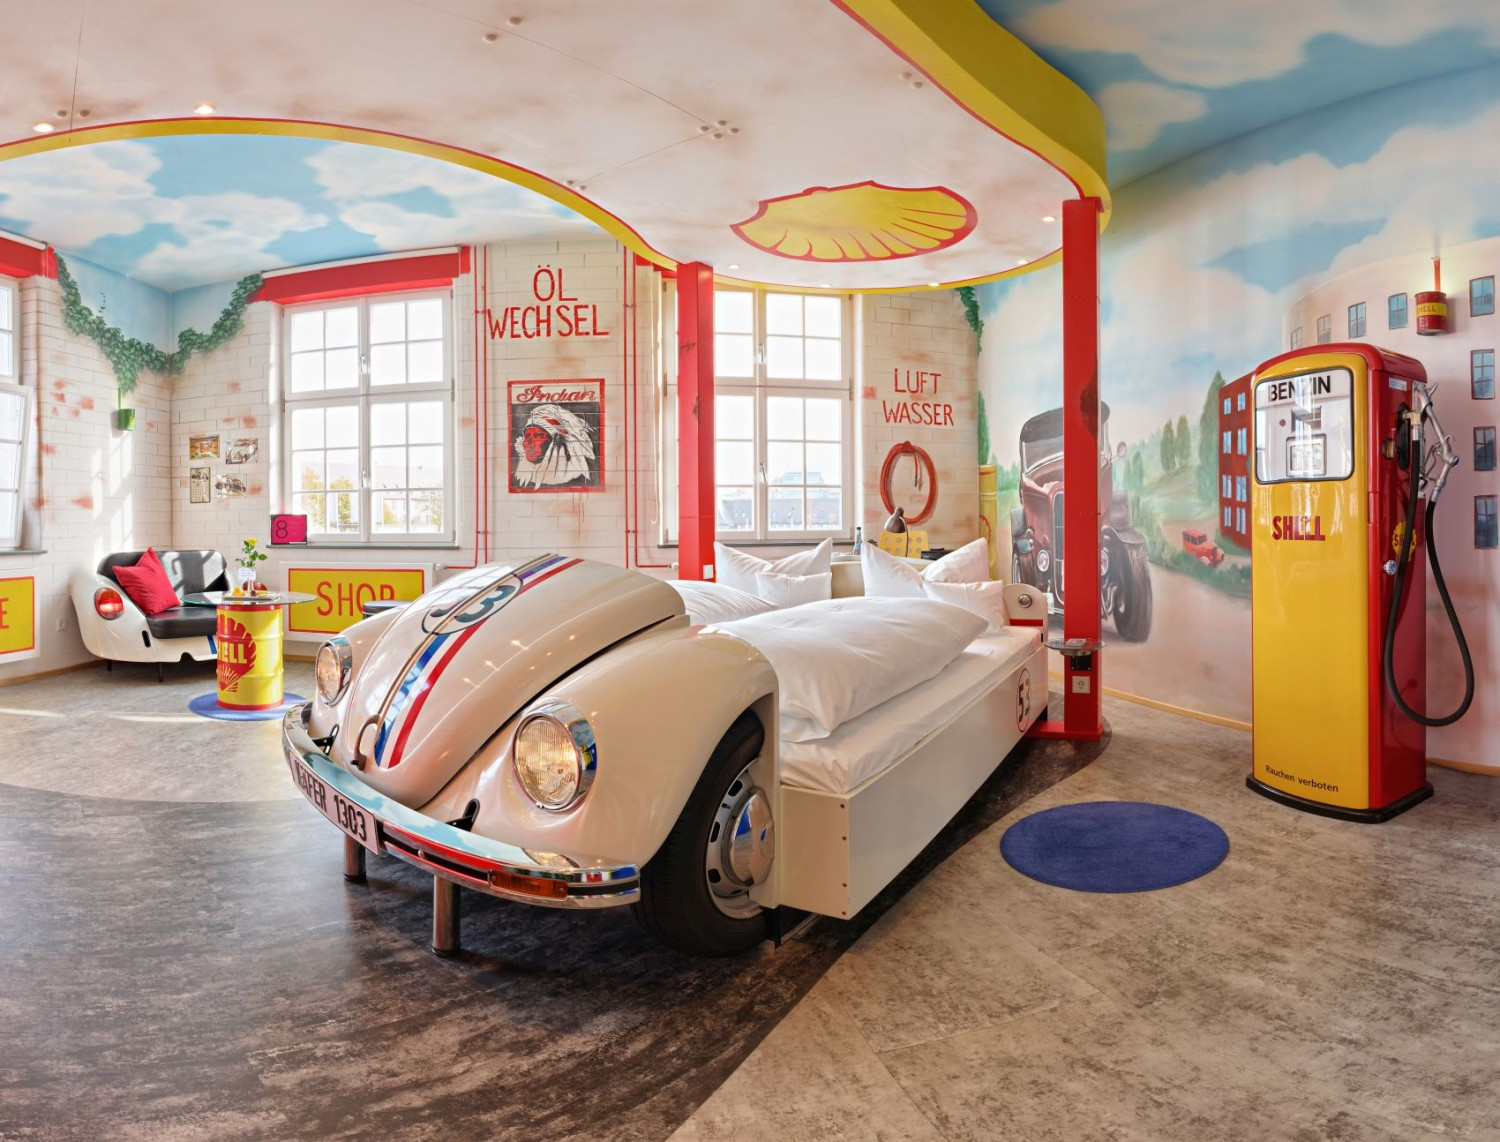 Car-themed hotel in Germany